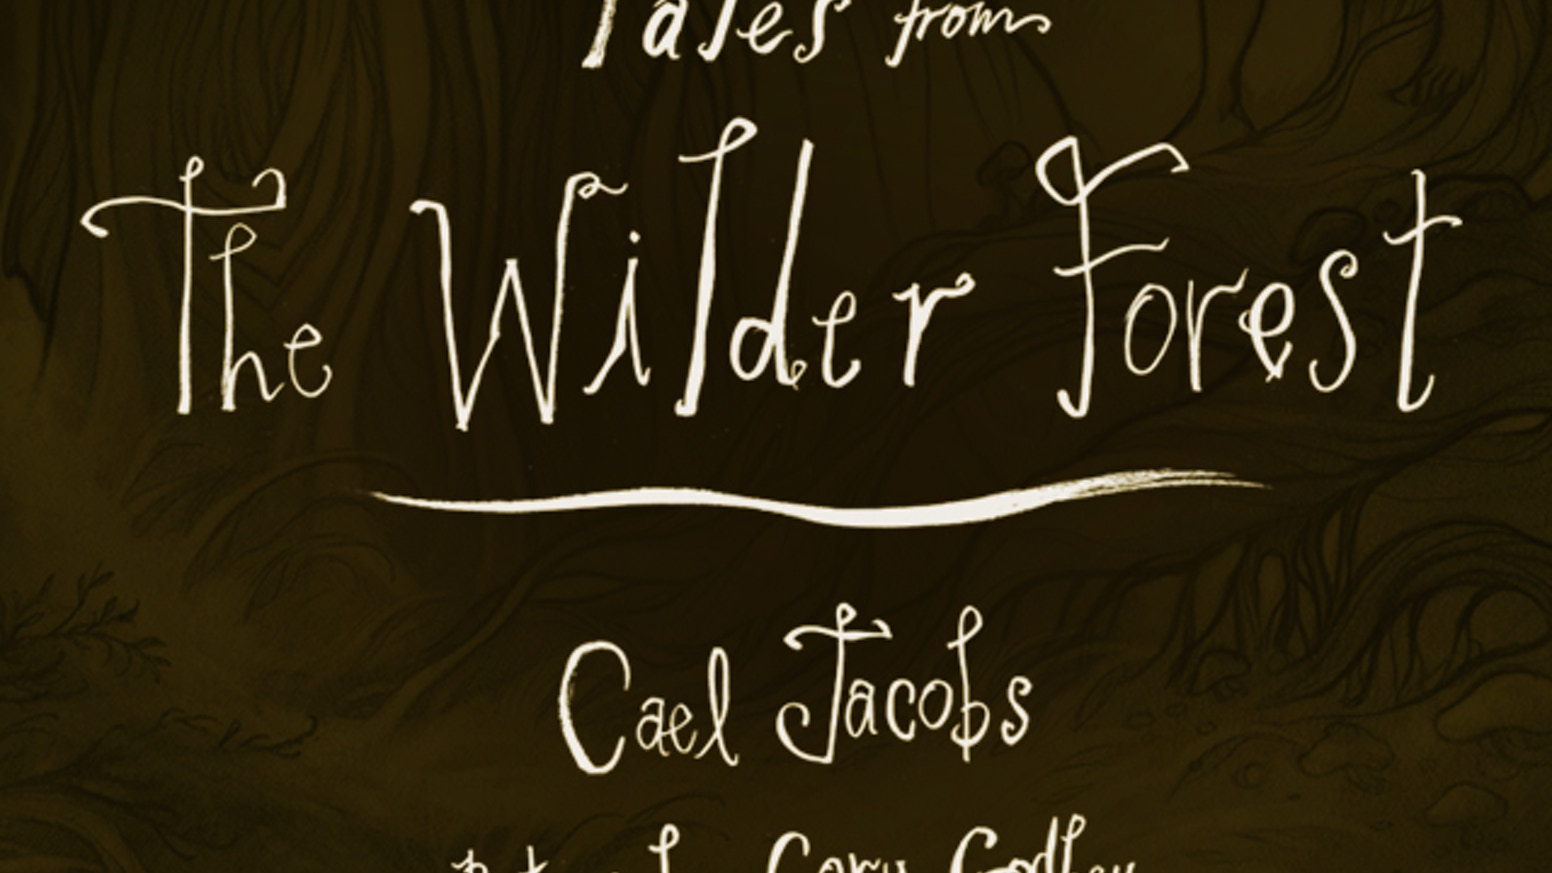 Tales from The Wilder Forest is a collection of fantastical, interwoven short stories by Cael Jacobs with pictures by Cory Godbey.